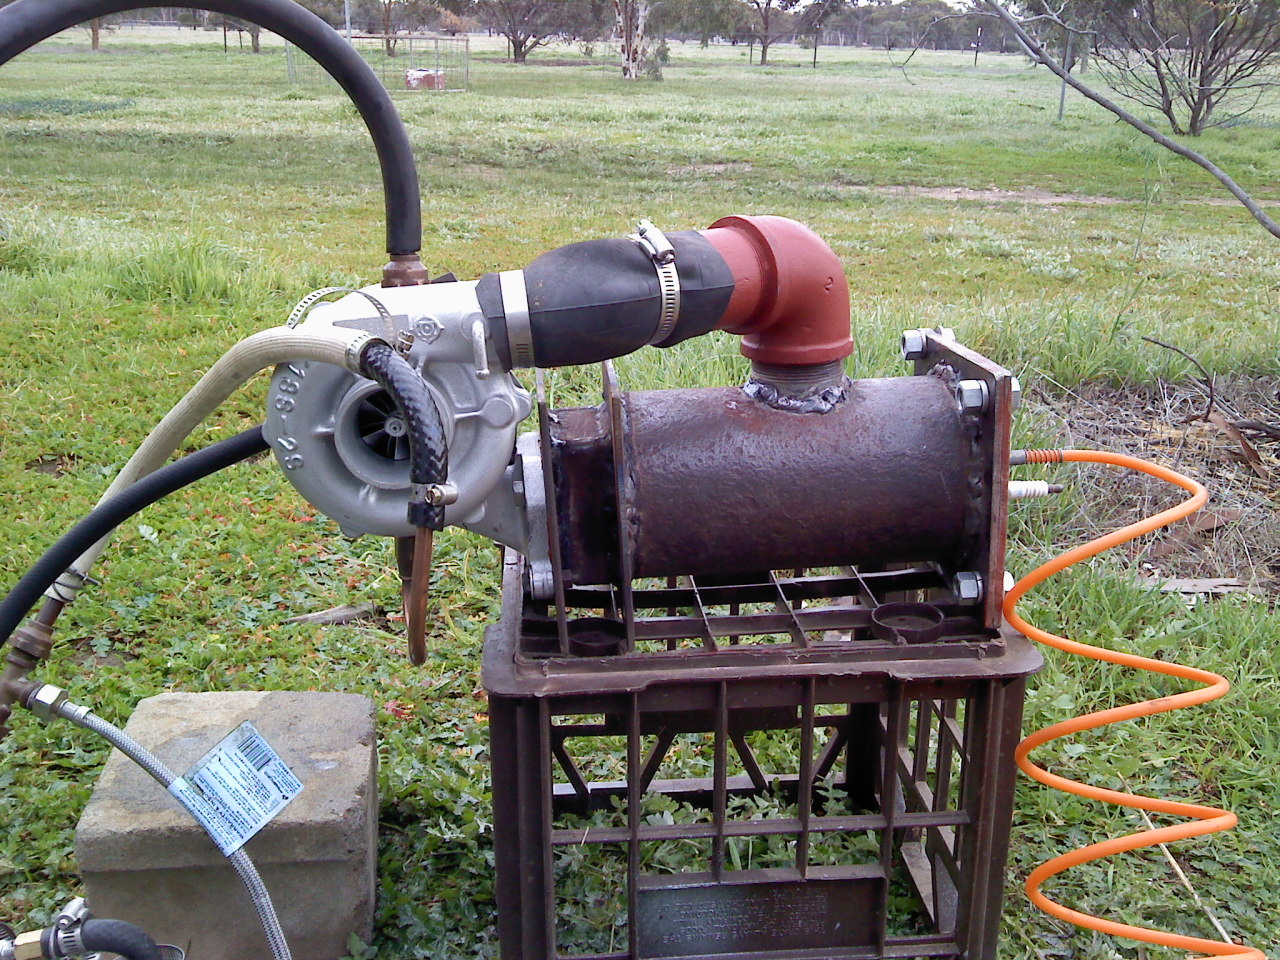 Home made turbo Jet